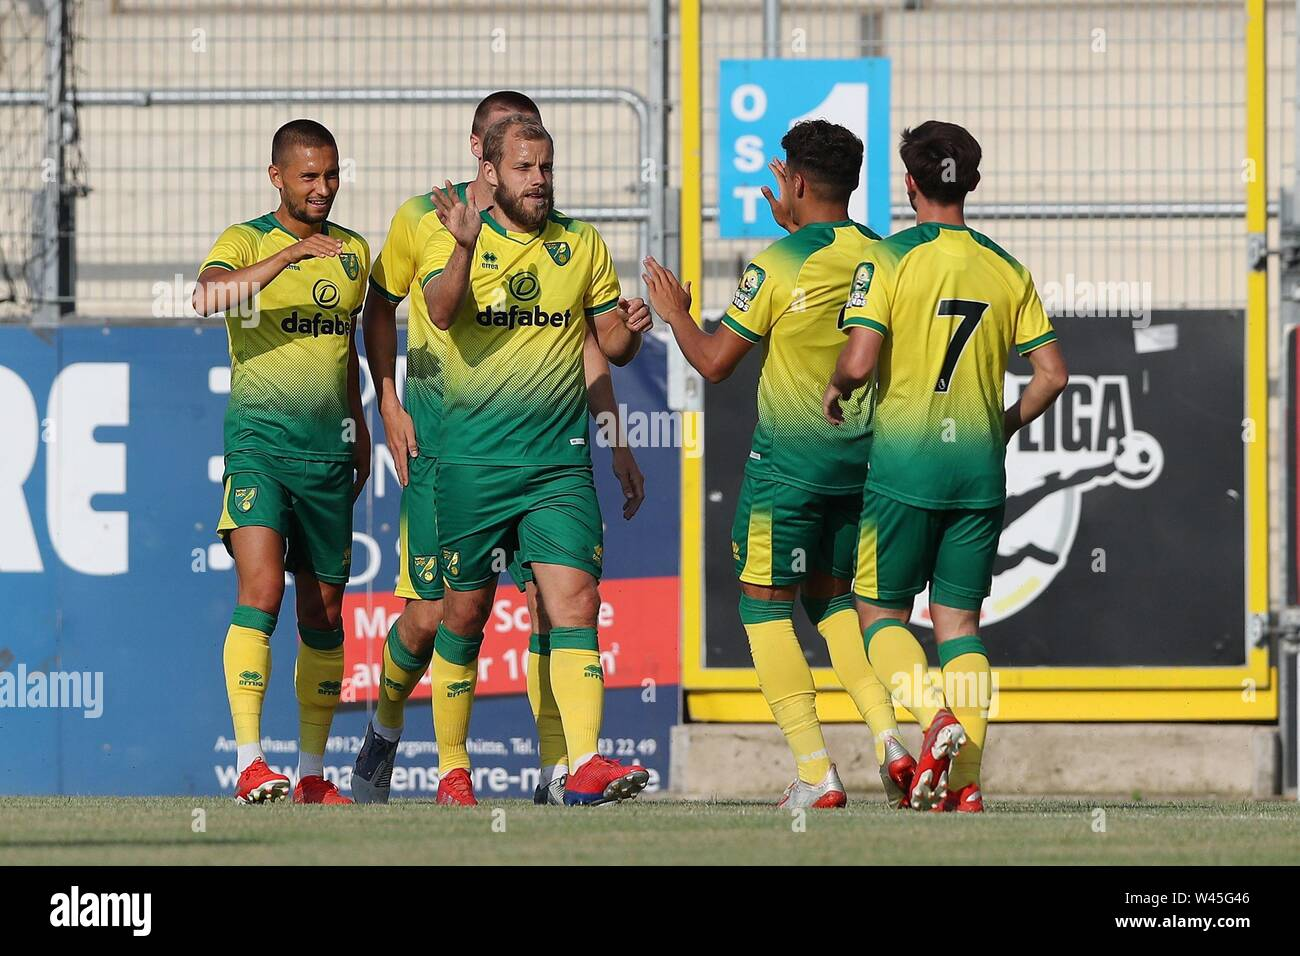 Lotte, Deutschland. 19th July, 2019. firo: 19.07.2019, football, 1.Bundesliga, season 2019/2020, friendly match, FC Schalke 04 - Norwich City jubilation Norwich to Teemu PUKKI | usage worldwide Credit: dpa/Alamy Live News - Stock Image